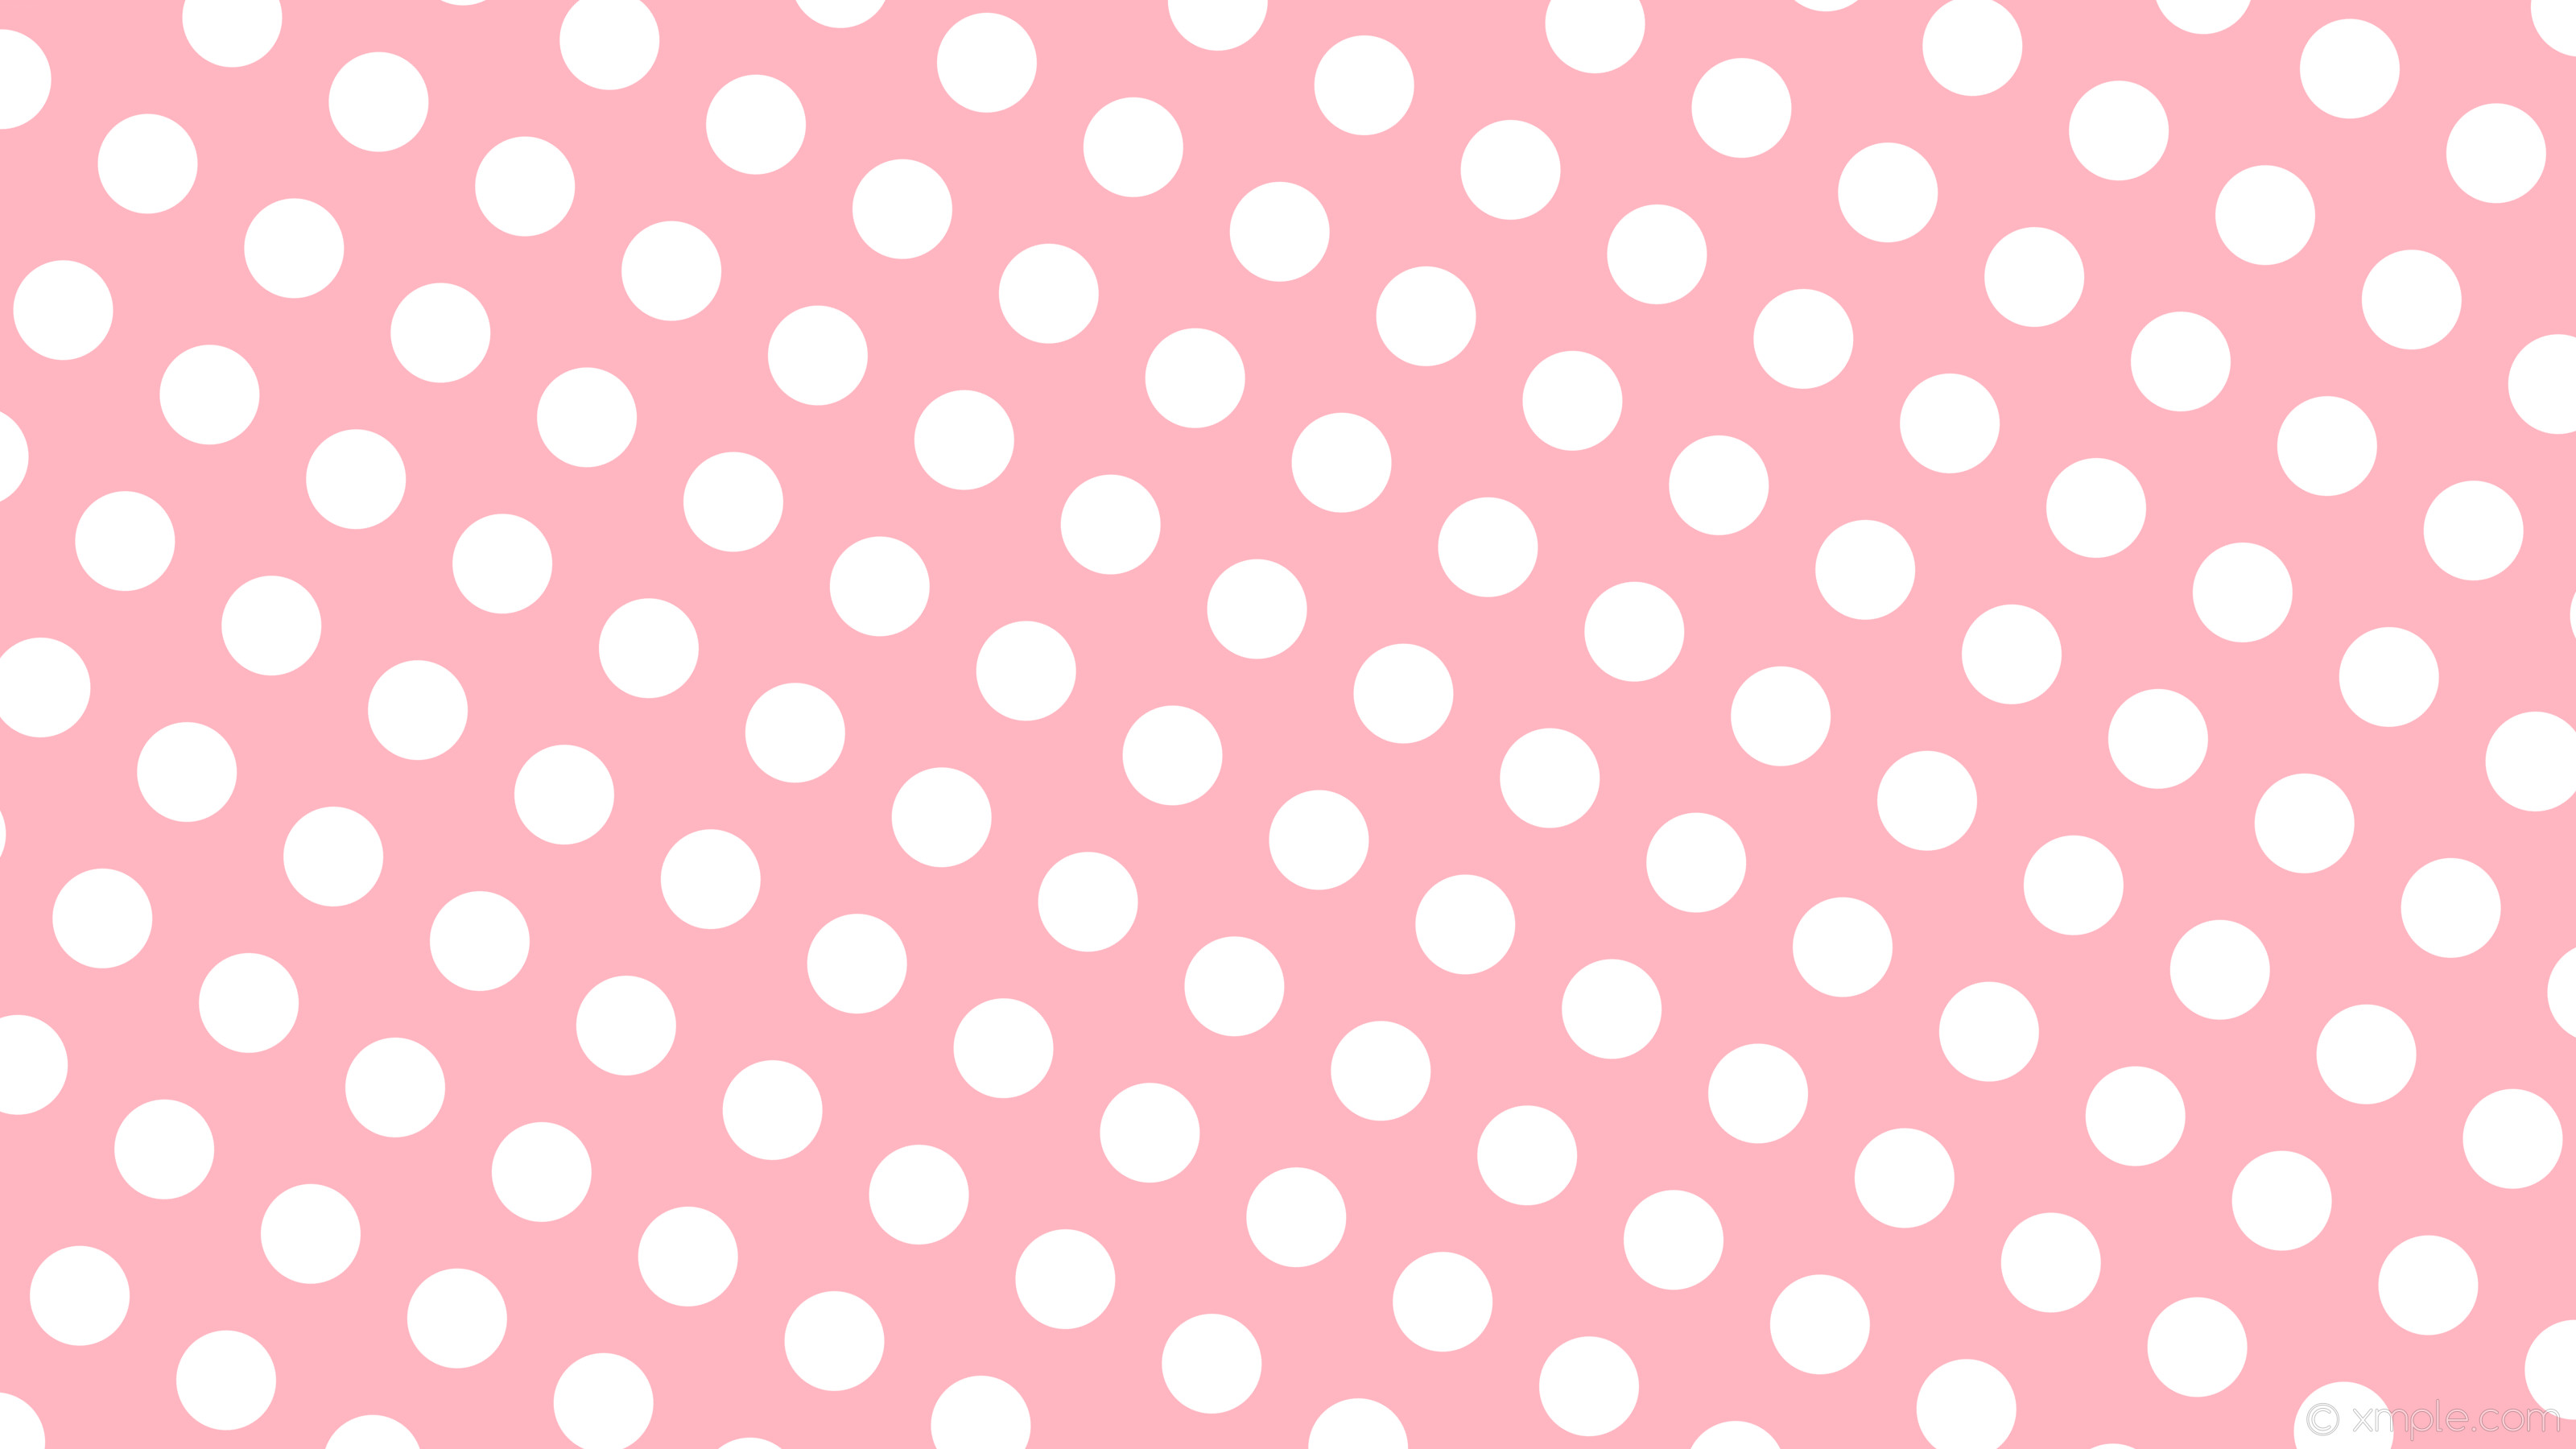 Cute polka dot wallpapers